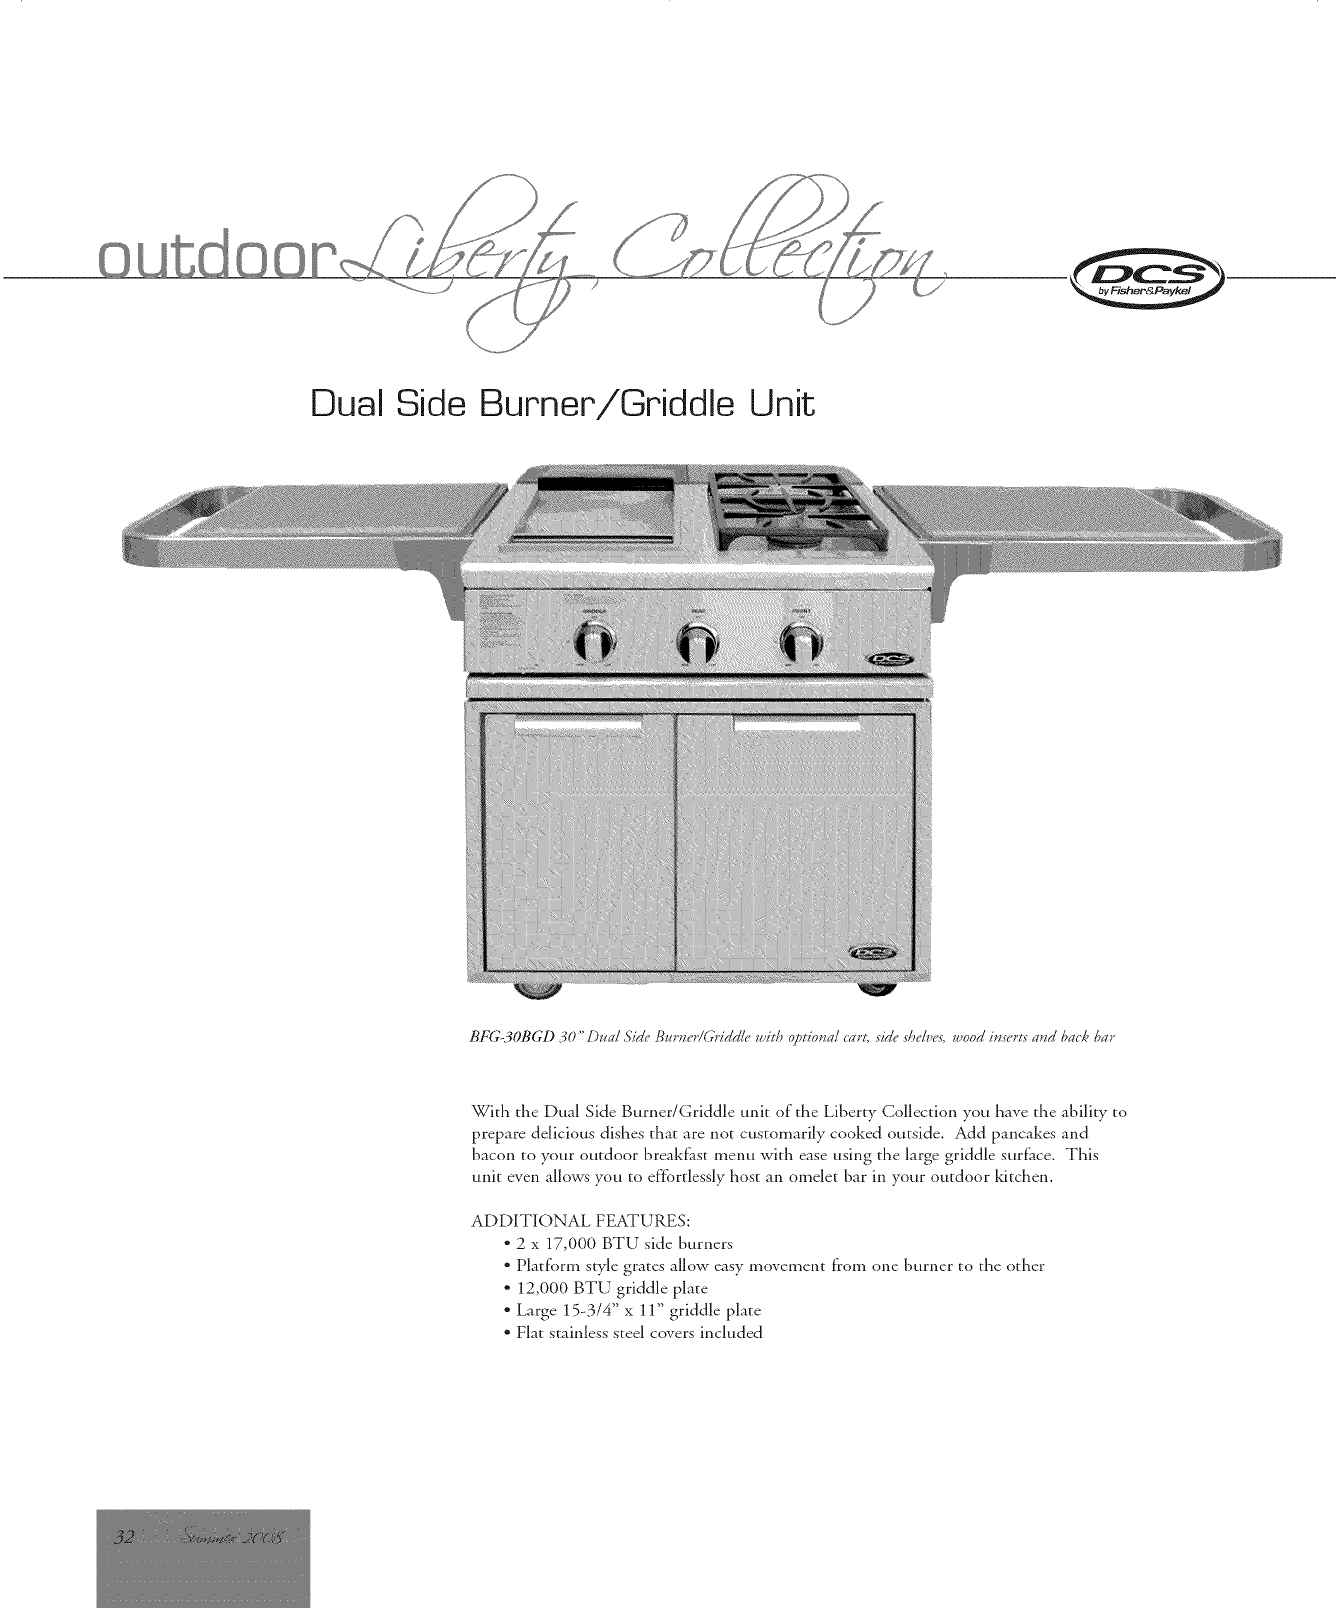 DCS (DYNAMIC COOKING SYSTEMS) Grill, Gas Manual L1002498